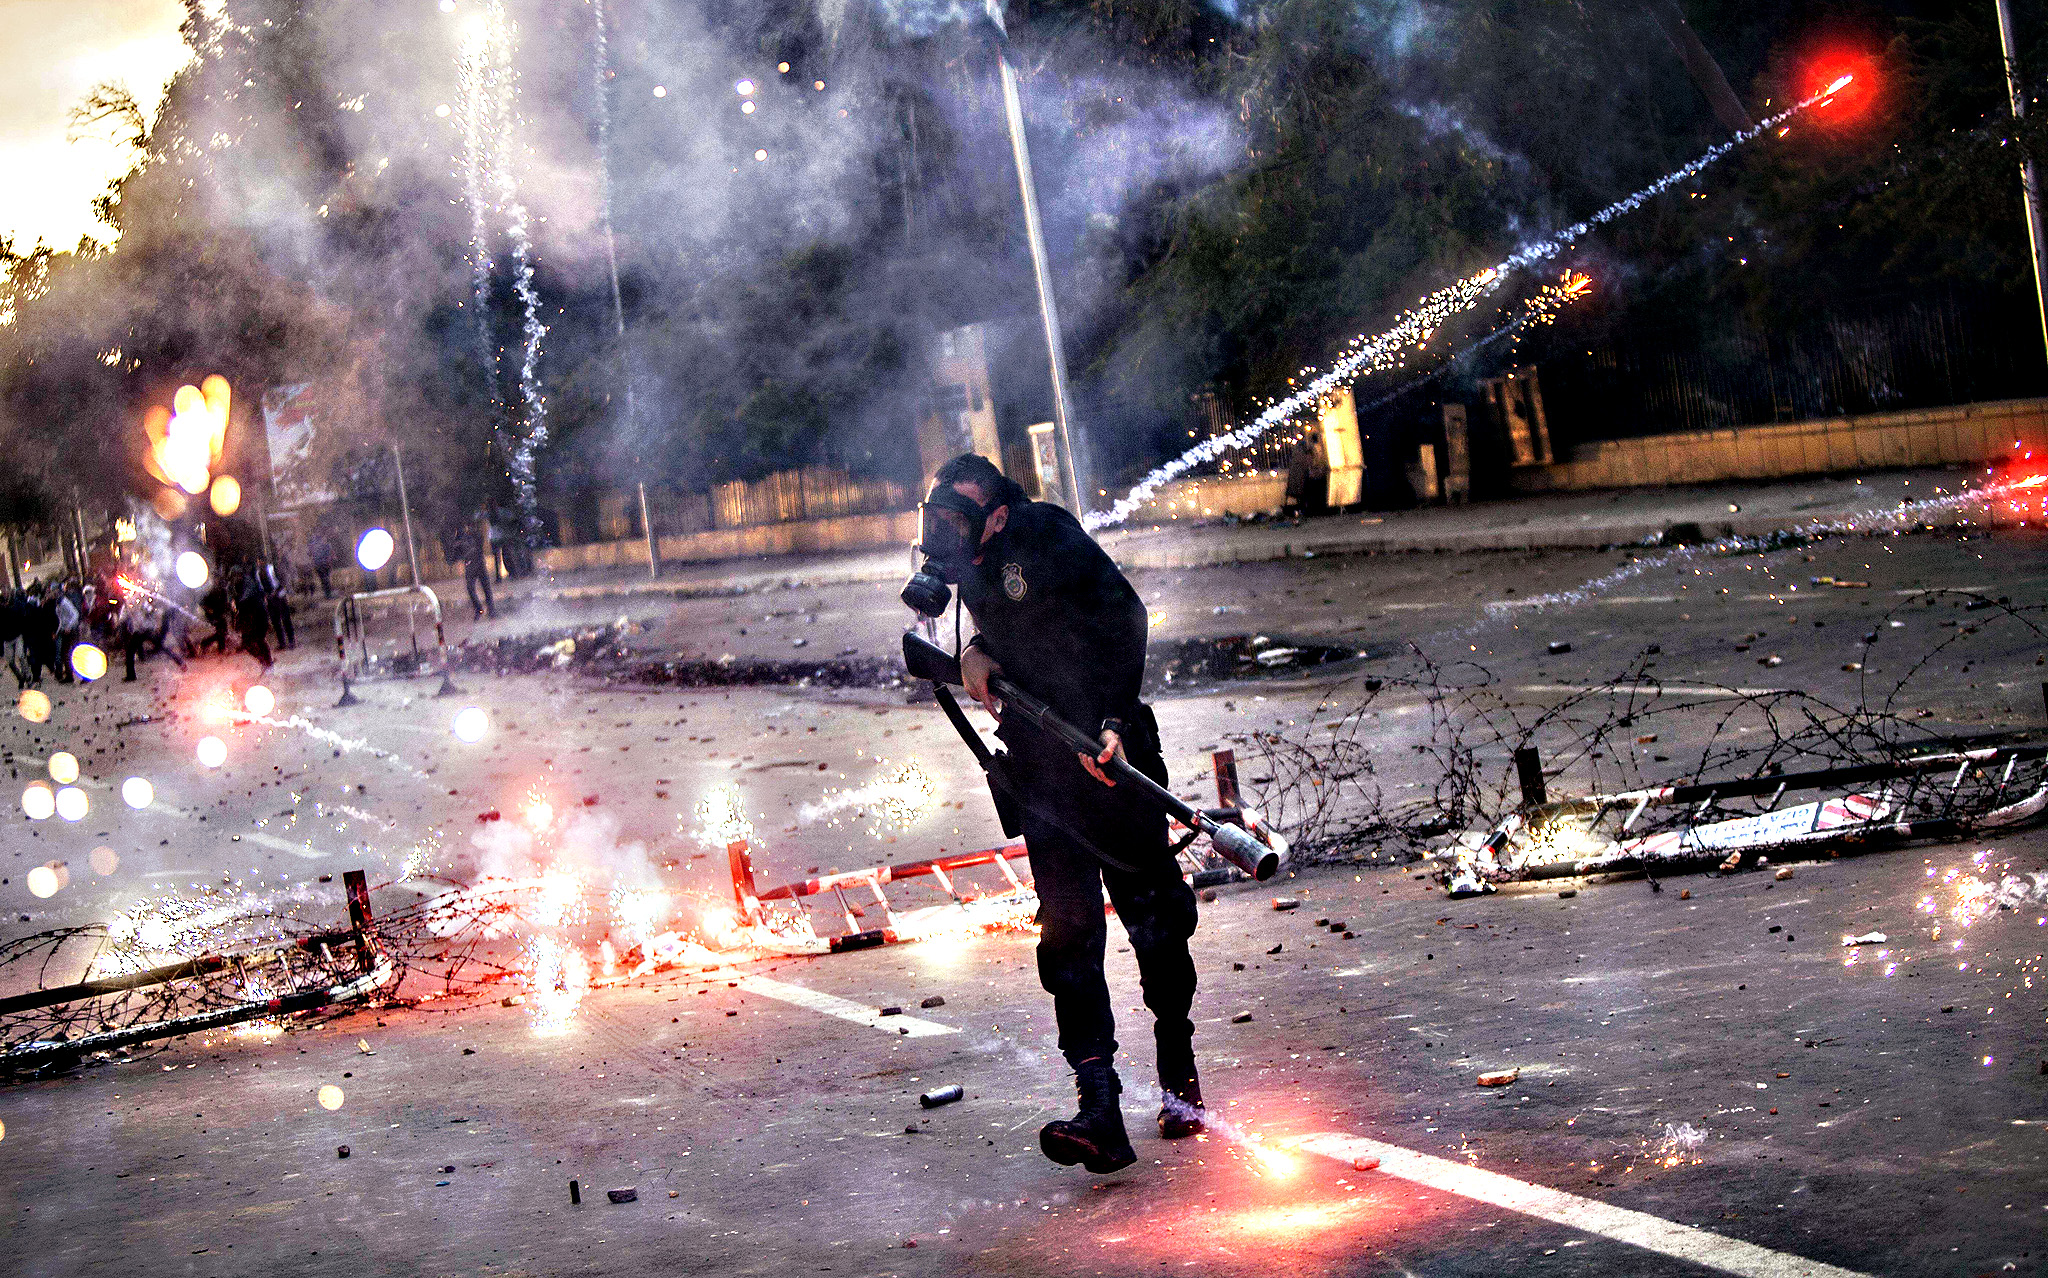 Egyptian students who support the Muslim Brotherhood (background) shoot fireworks at riot policemen (foreground) during clashes outside the University of Cairo campus in the capital